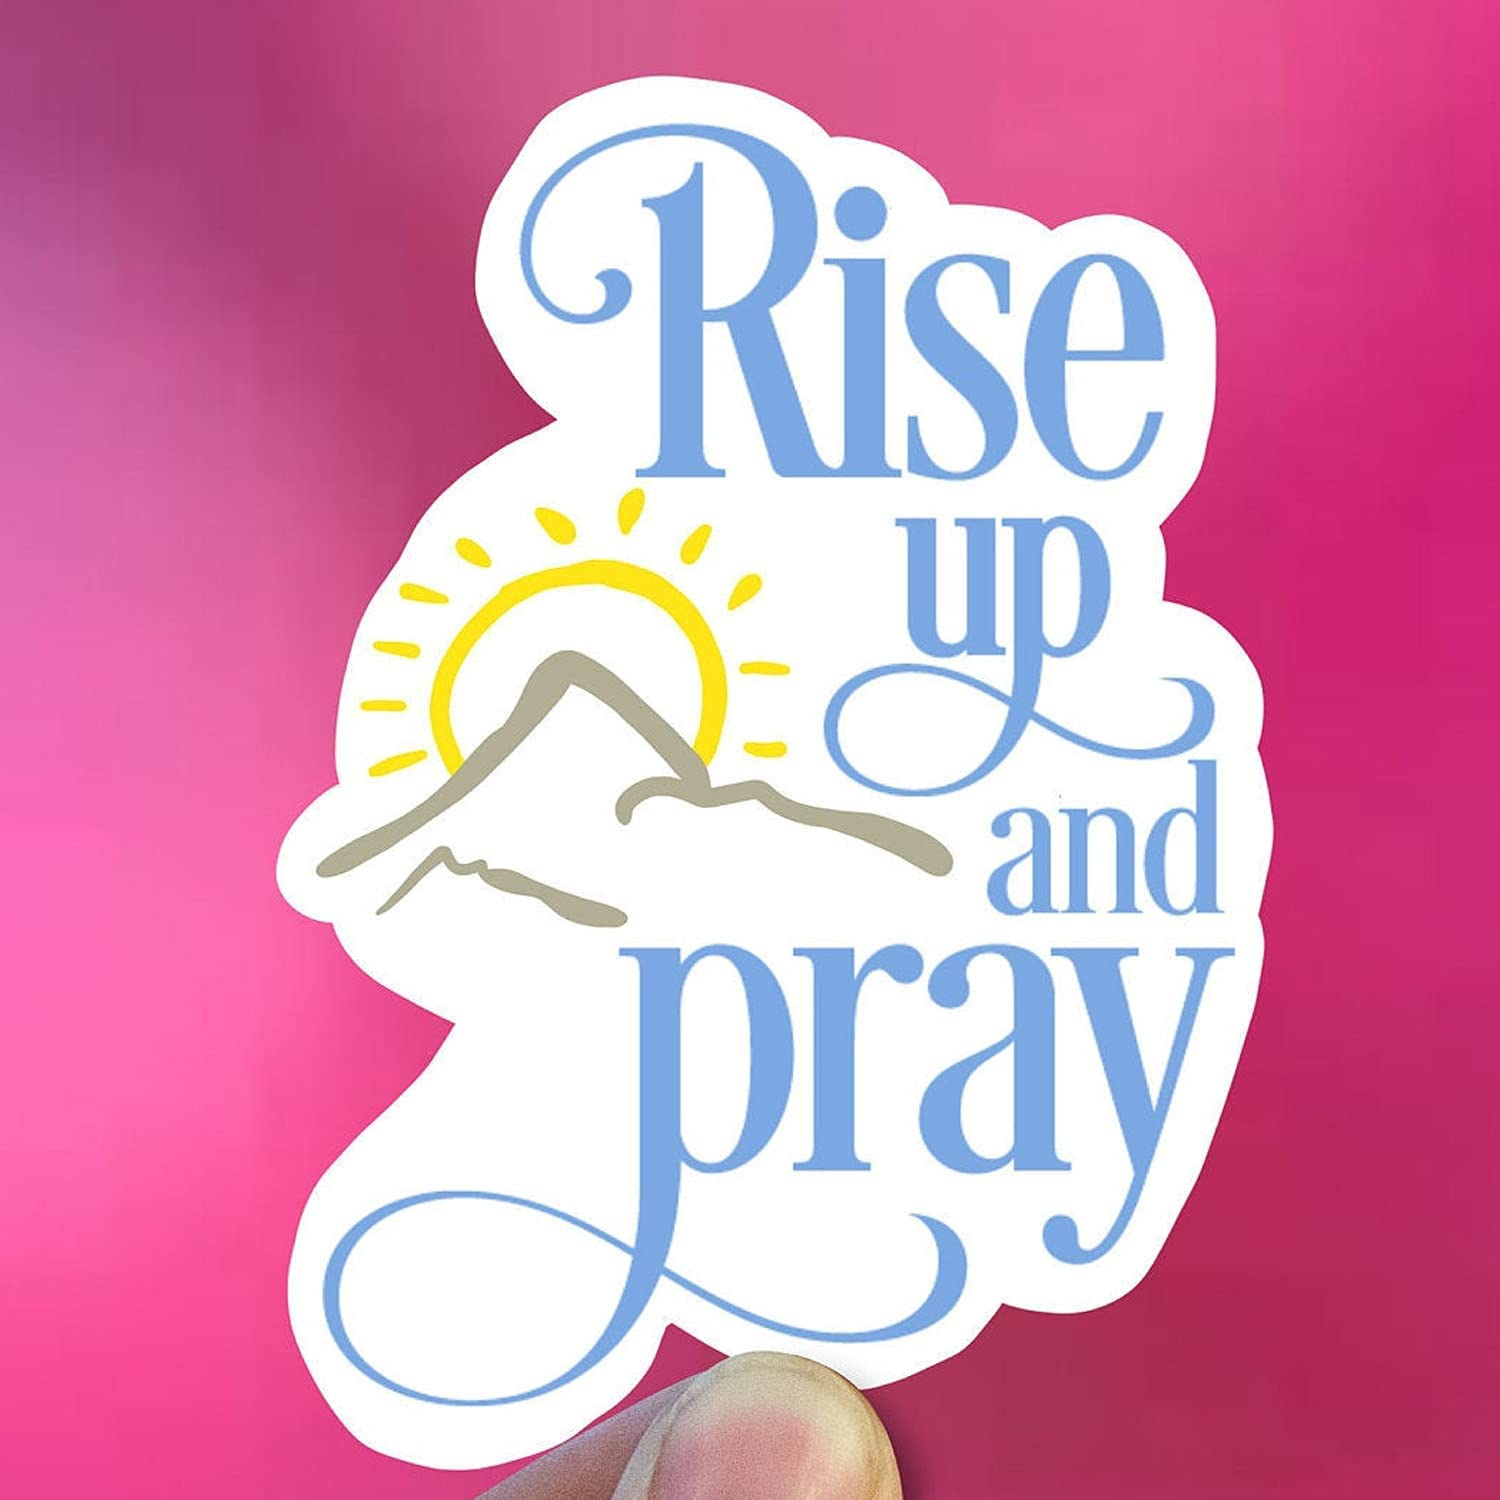 Rise up and Pray Vinyl Ranking integrated 1st place Stickers Safety and trust Bottle Stick Laptop Decal Water